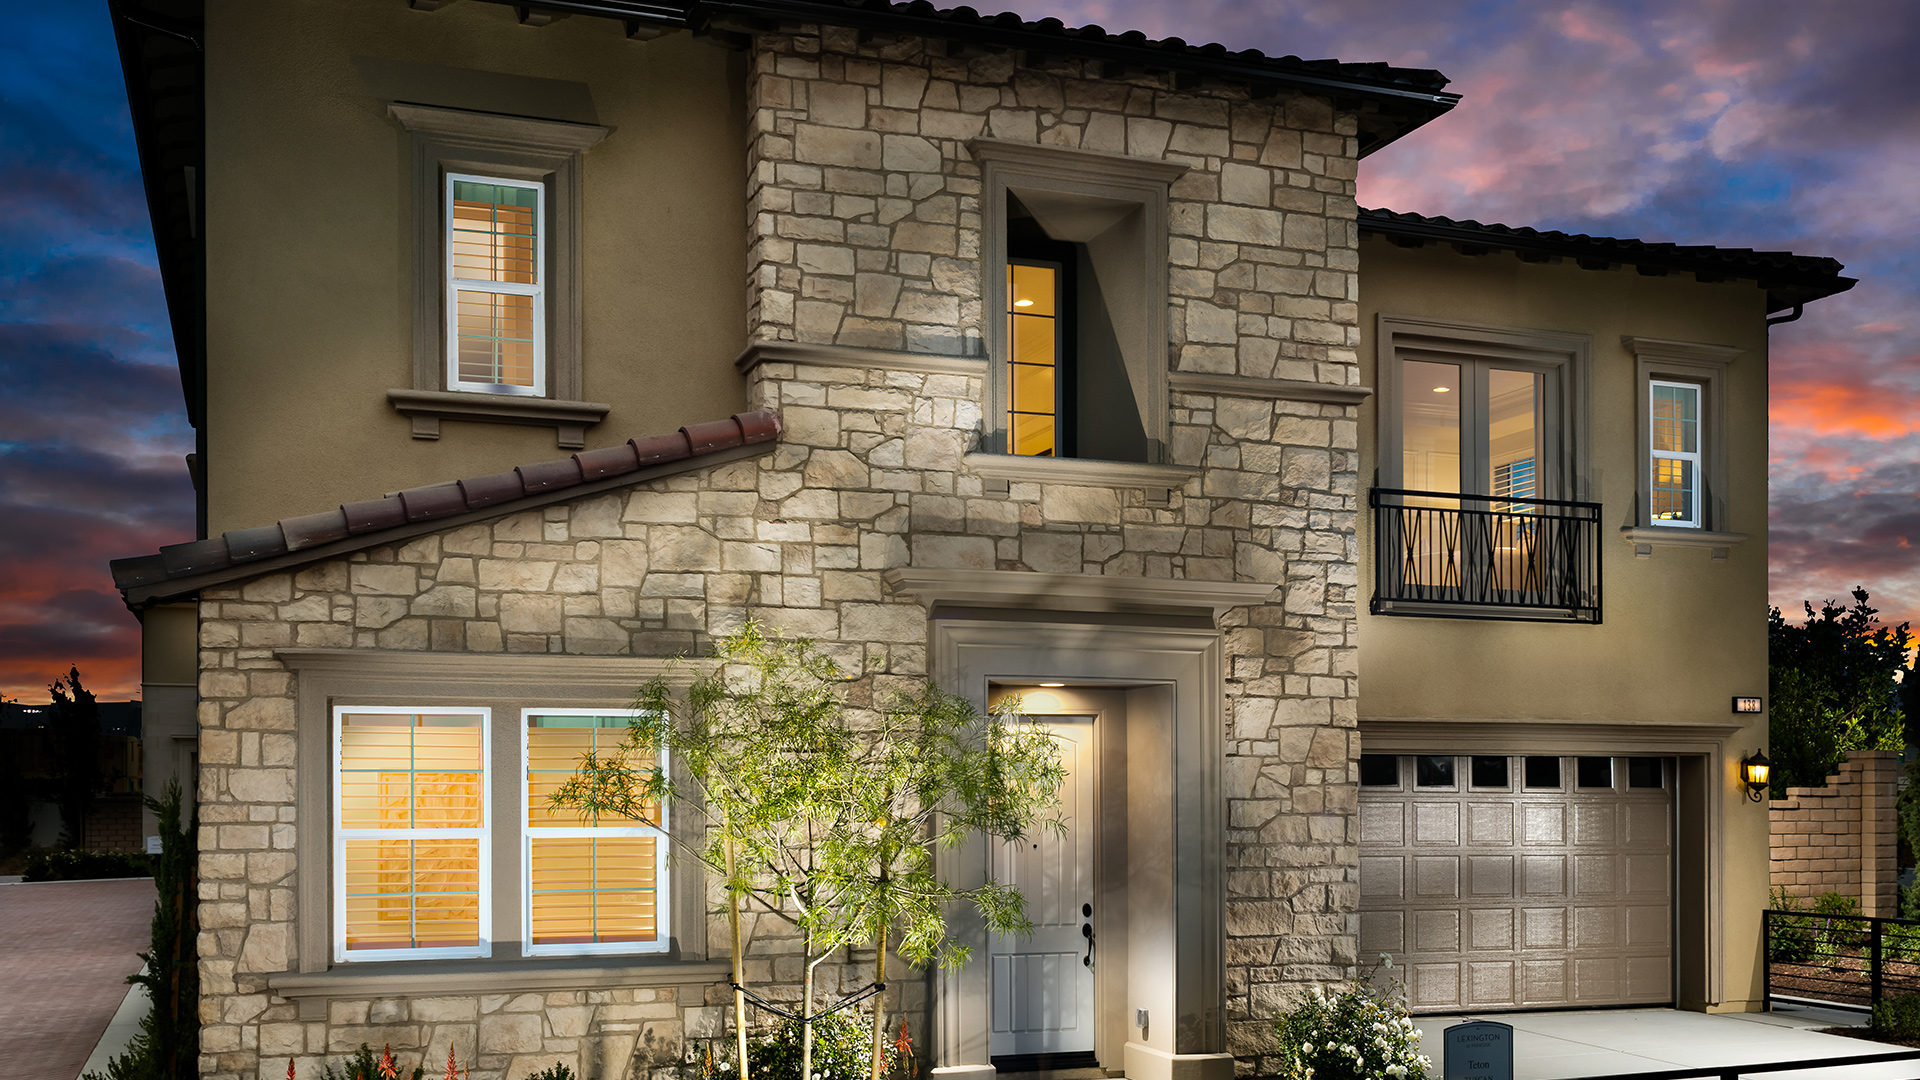 Luxurious new single-family homes at Lexington feature five 2- and 3-story home designs